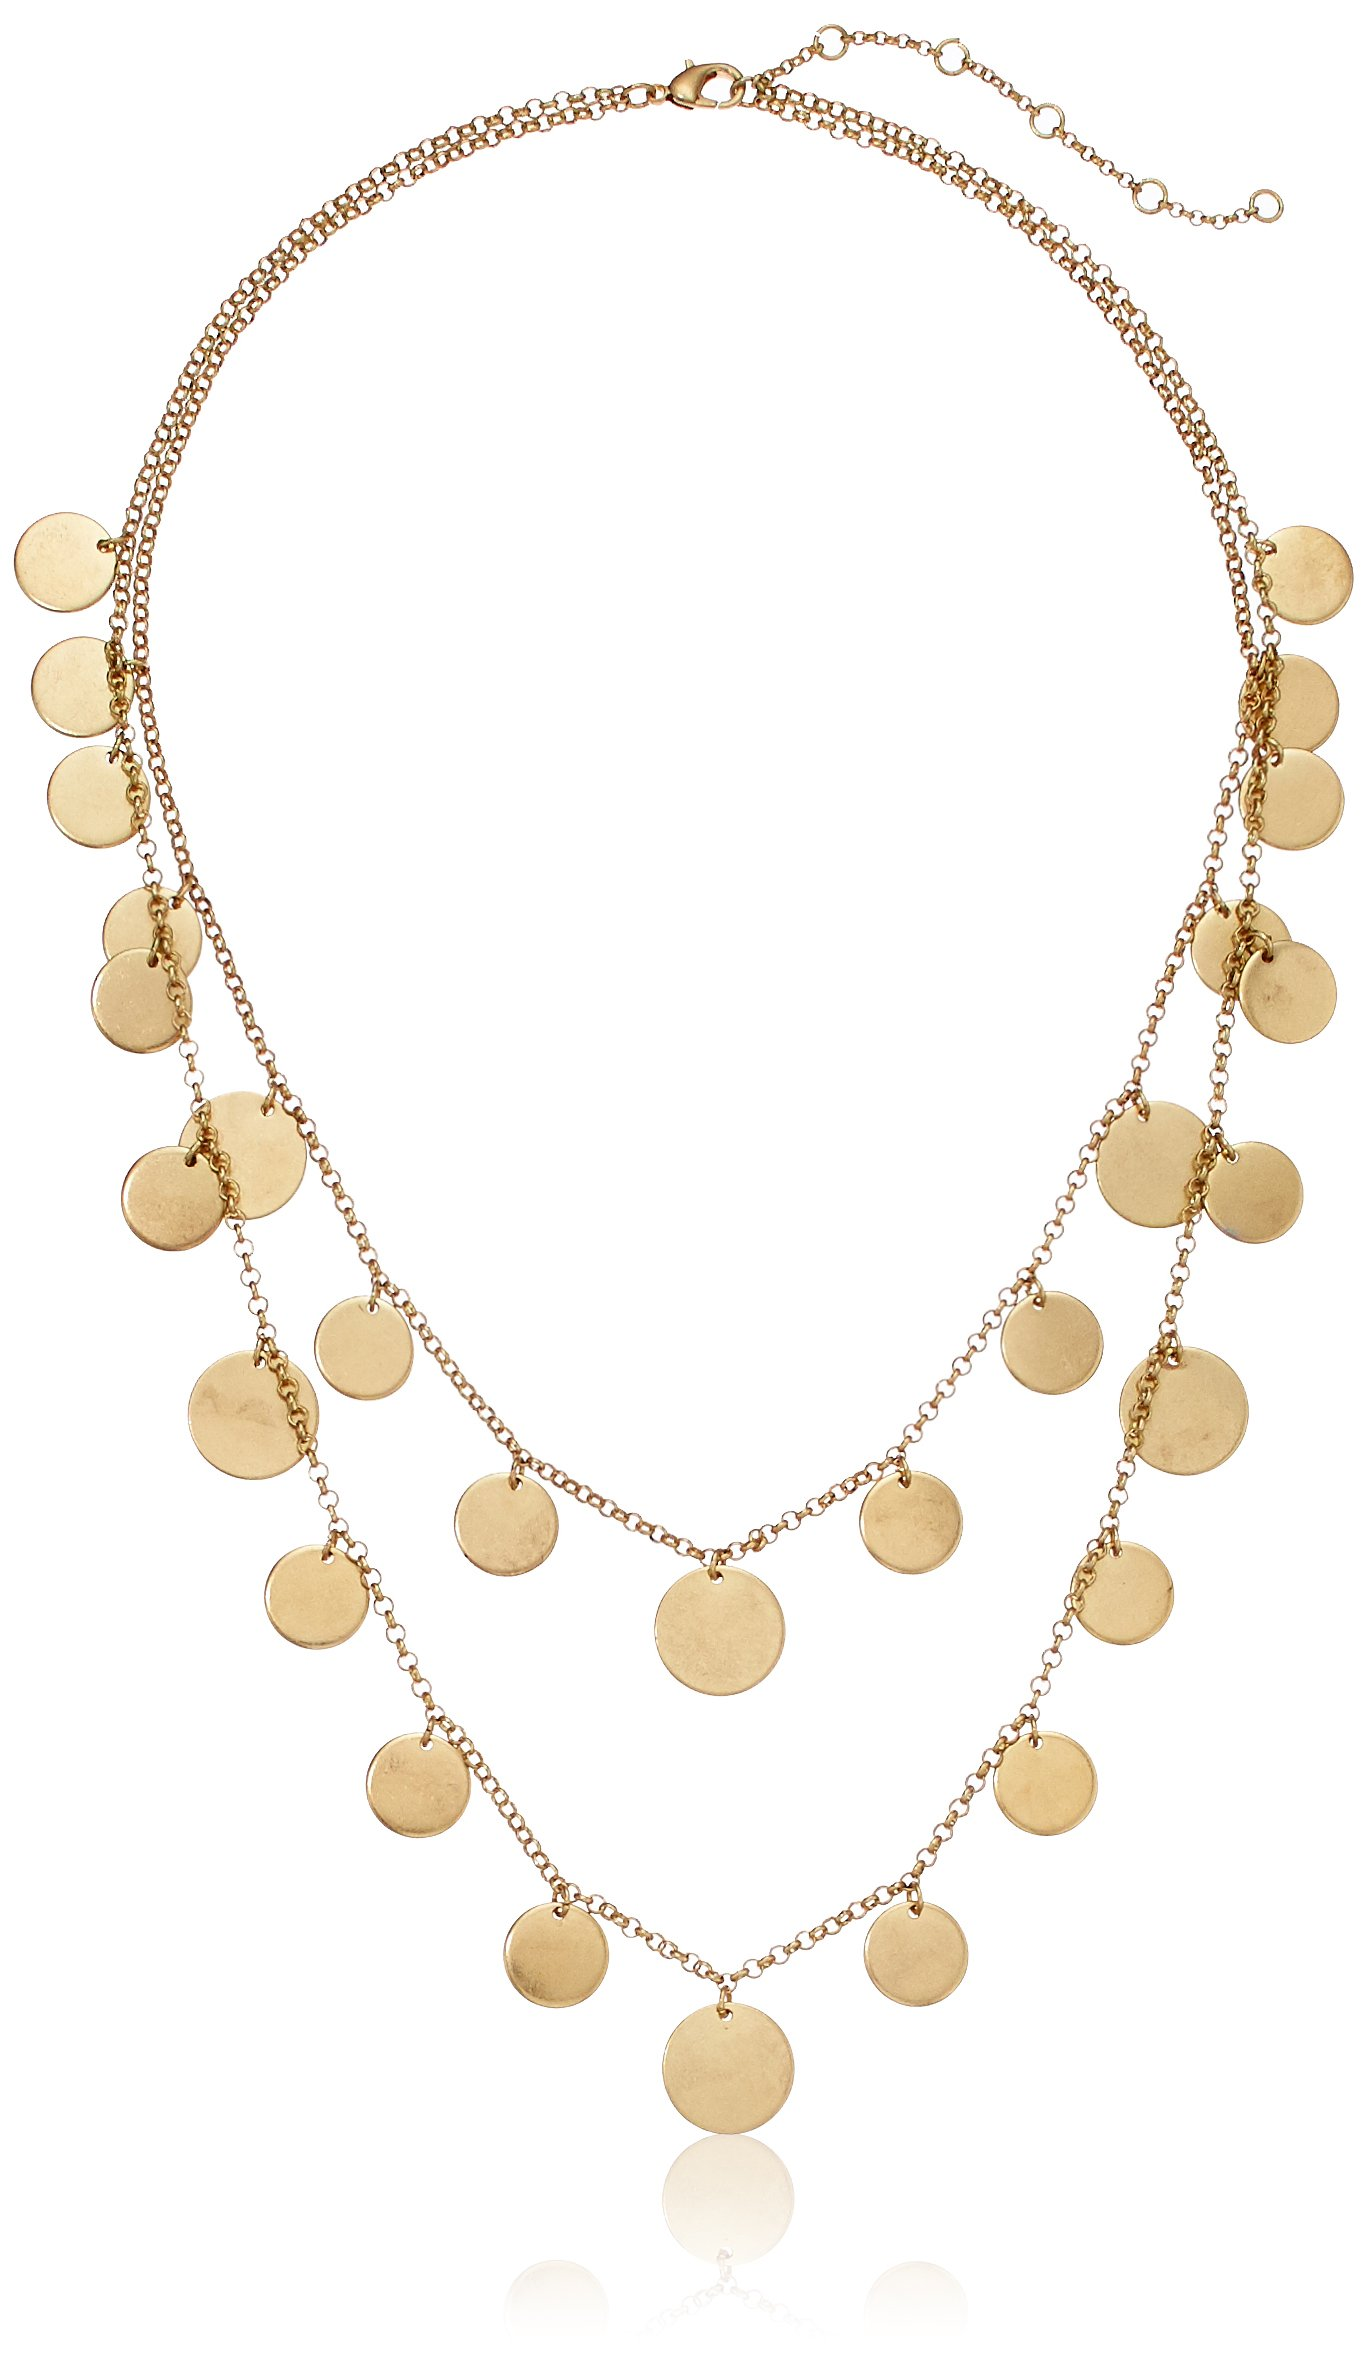 Panacea Women's Gold Two Row Disk Strand Necklace, 28